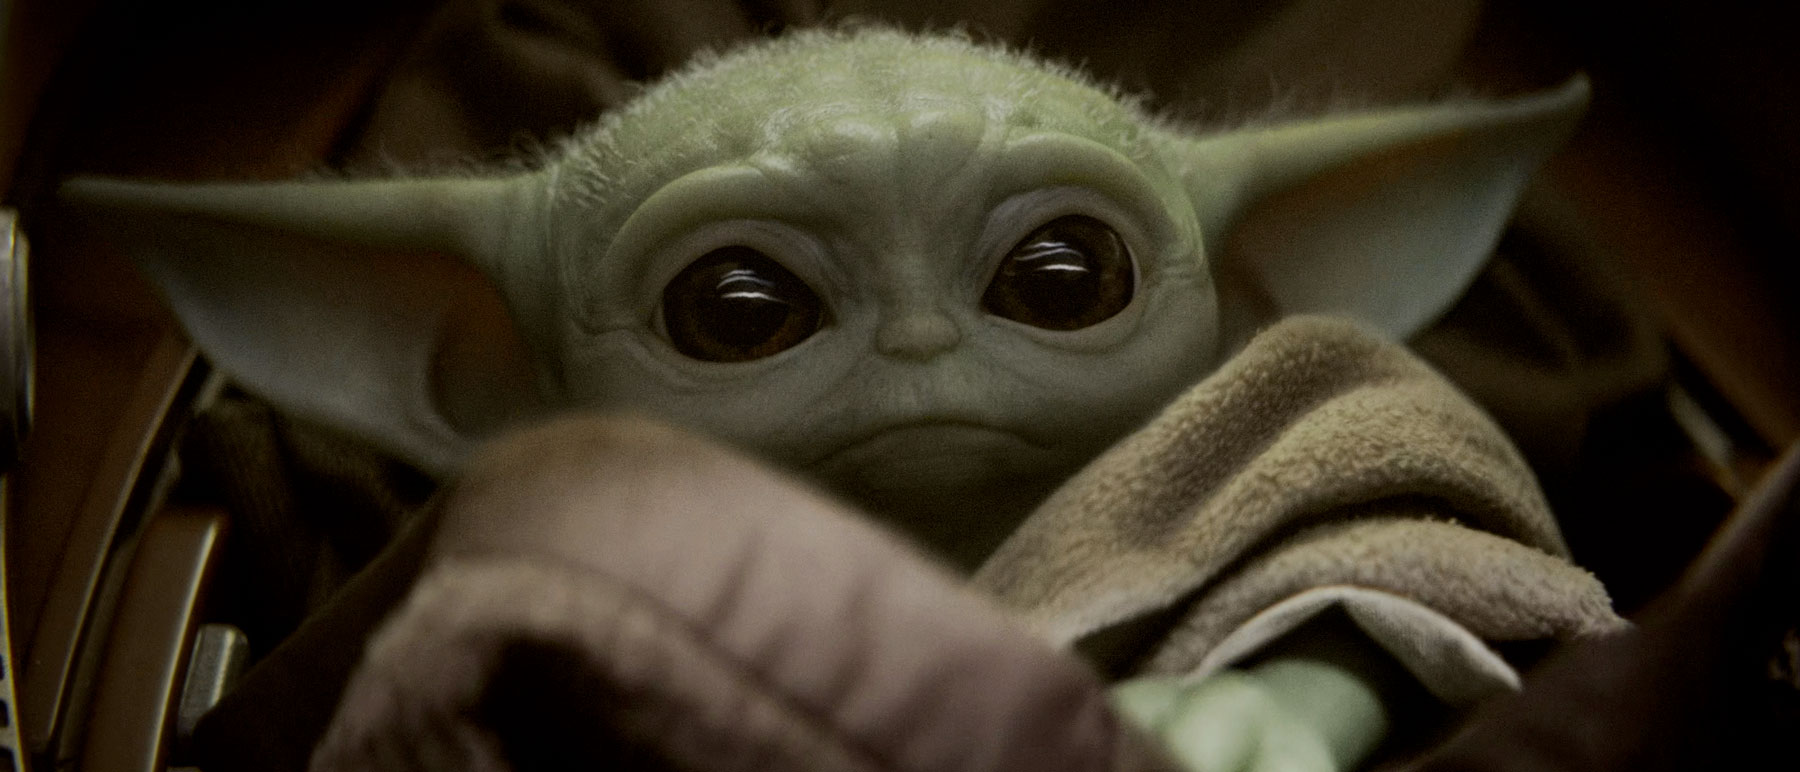 Could Baby Yoda be in The Mandalorian Season 2 Oscar Isaac